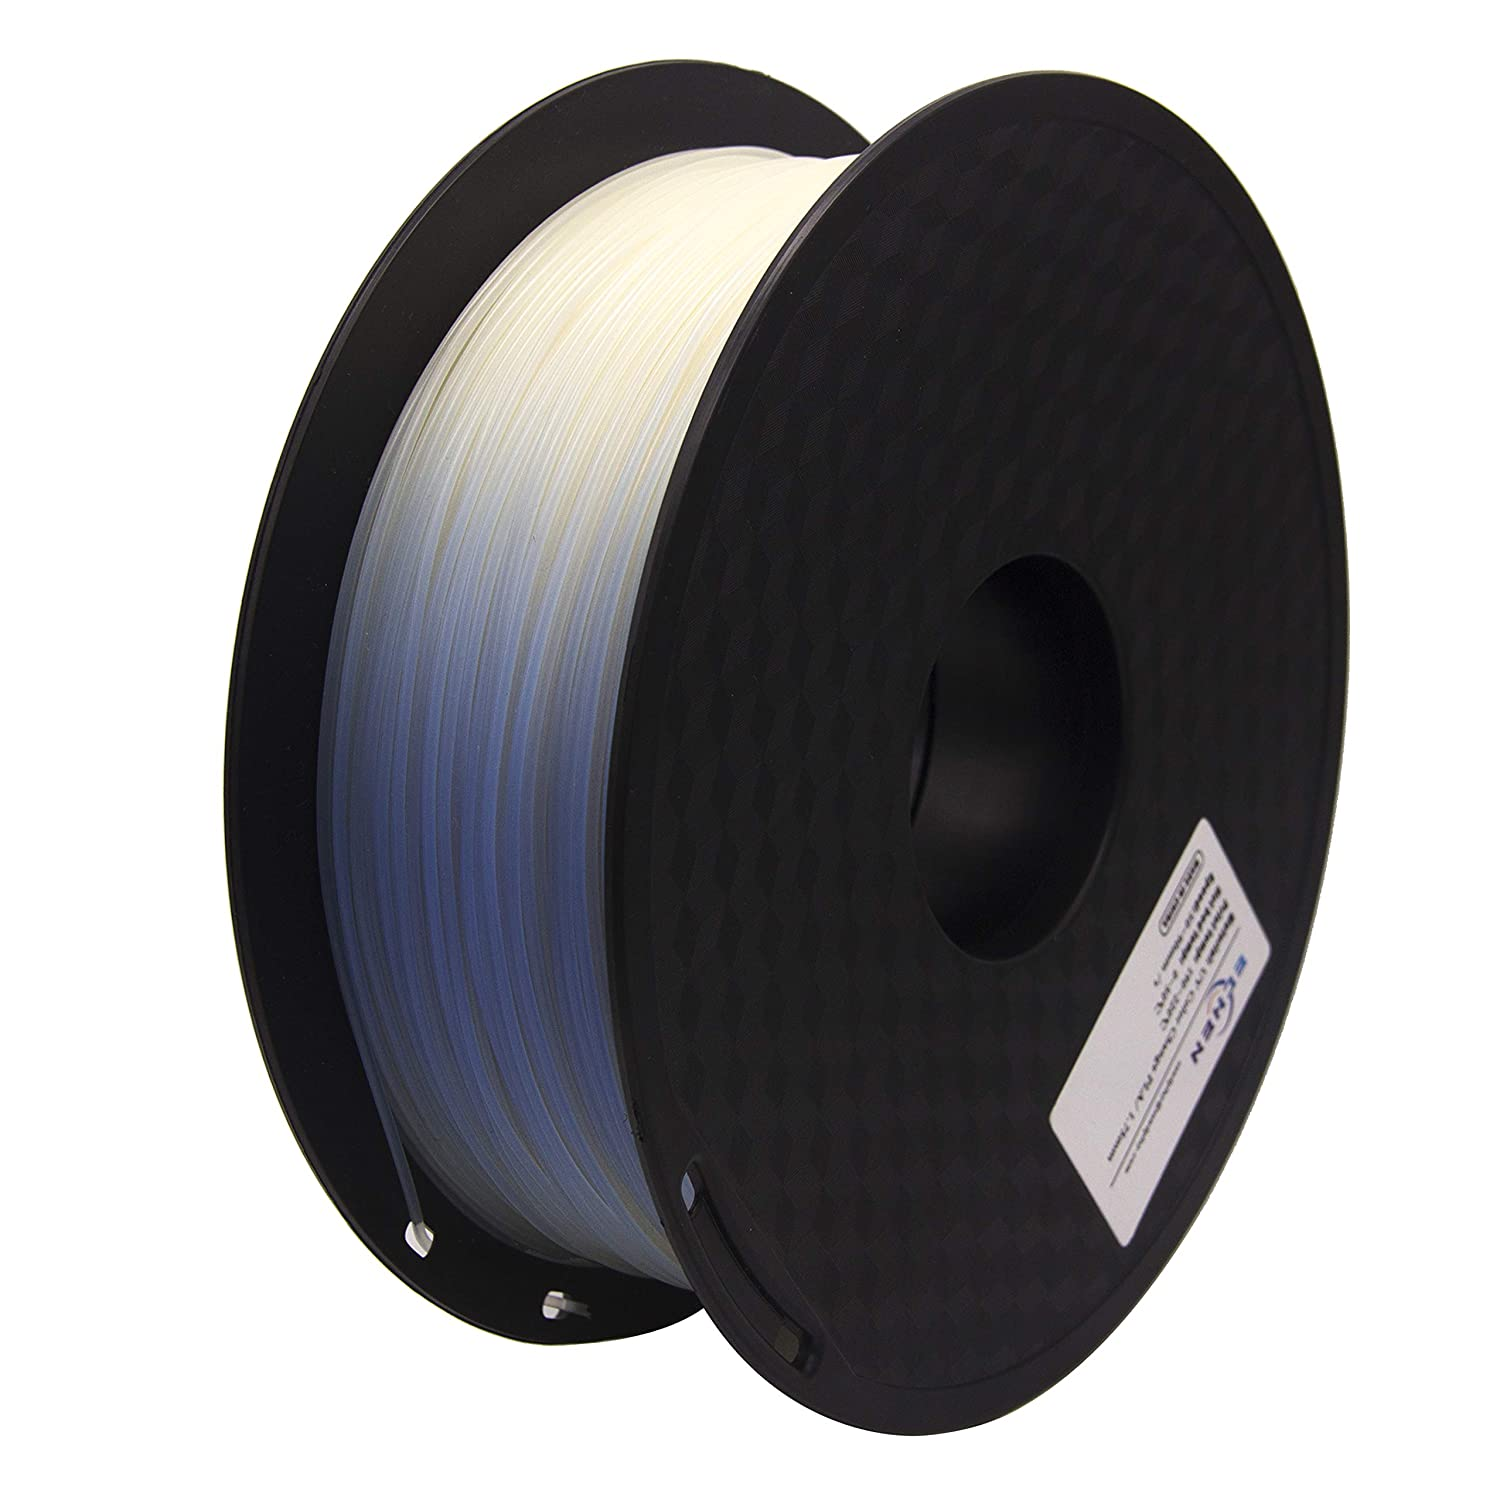 Glow in The Dark Red 1 kg Spool 1.75mm Includes Sample Tri Color Changing with Temperature Filament. AMOLEN PLA 3D Printer Filament